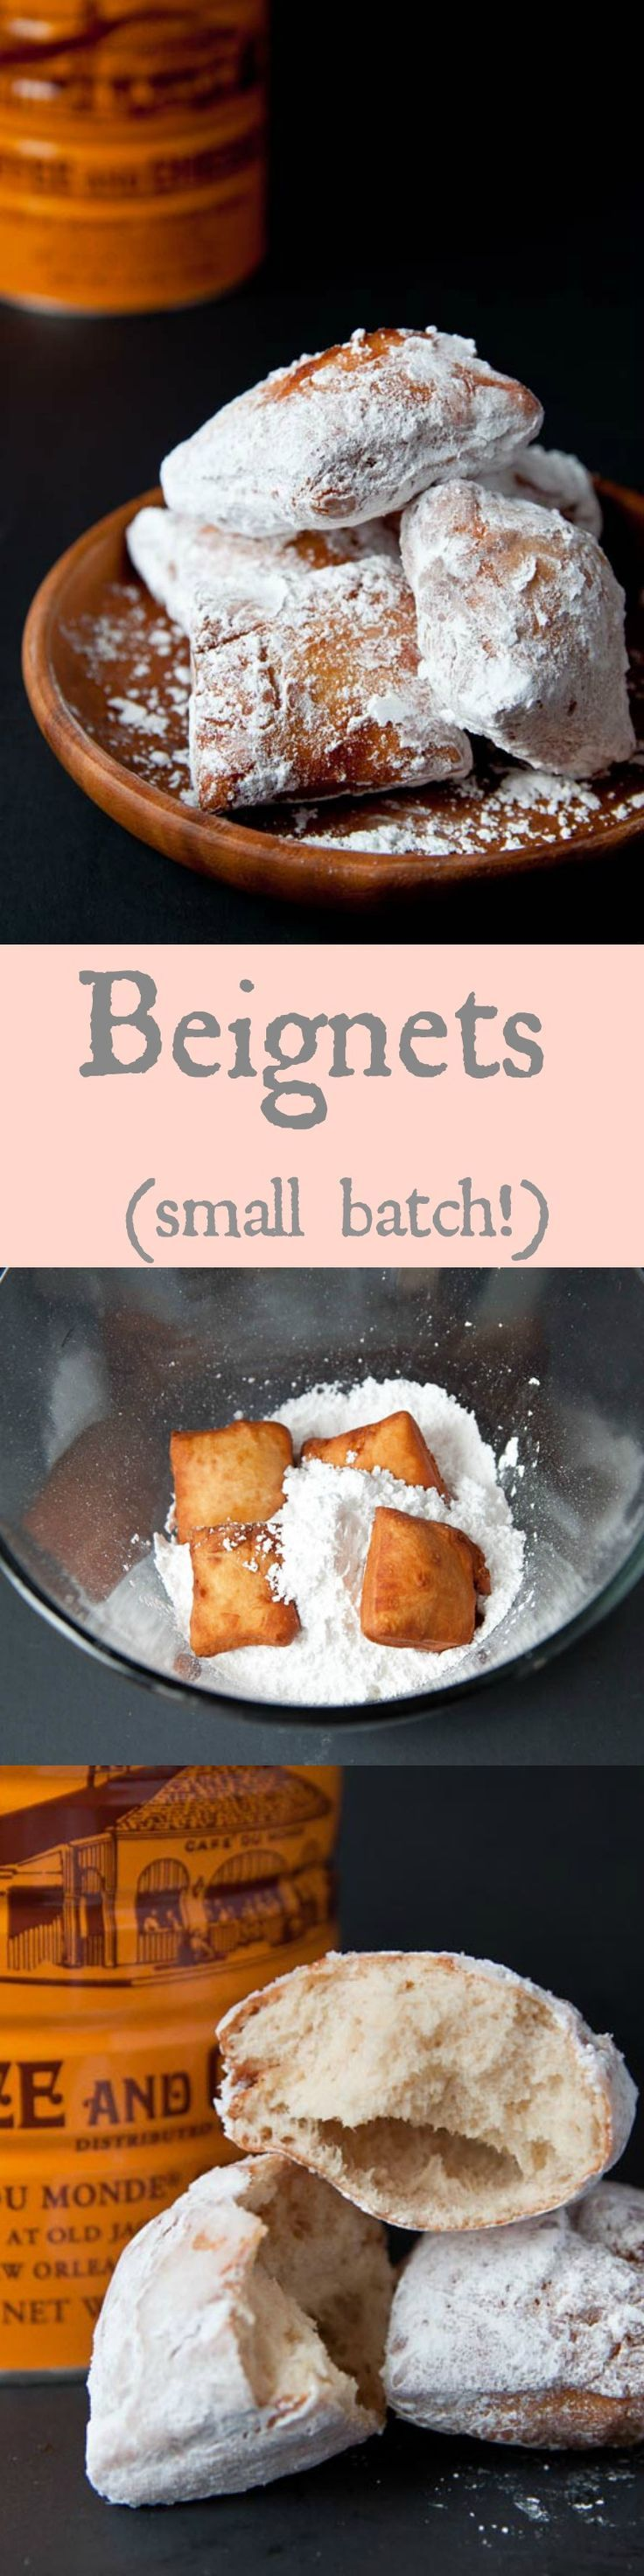 Beignets made from scratch! Just like Cafe du Monde.: